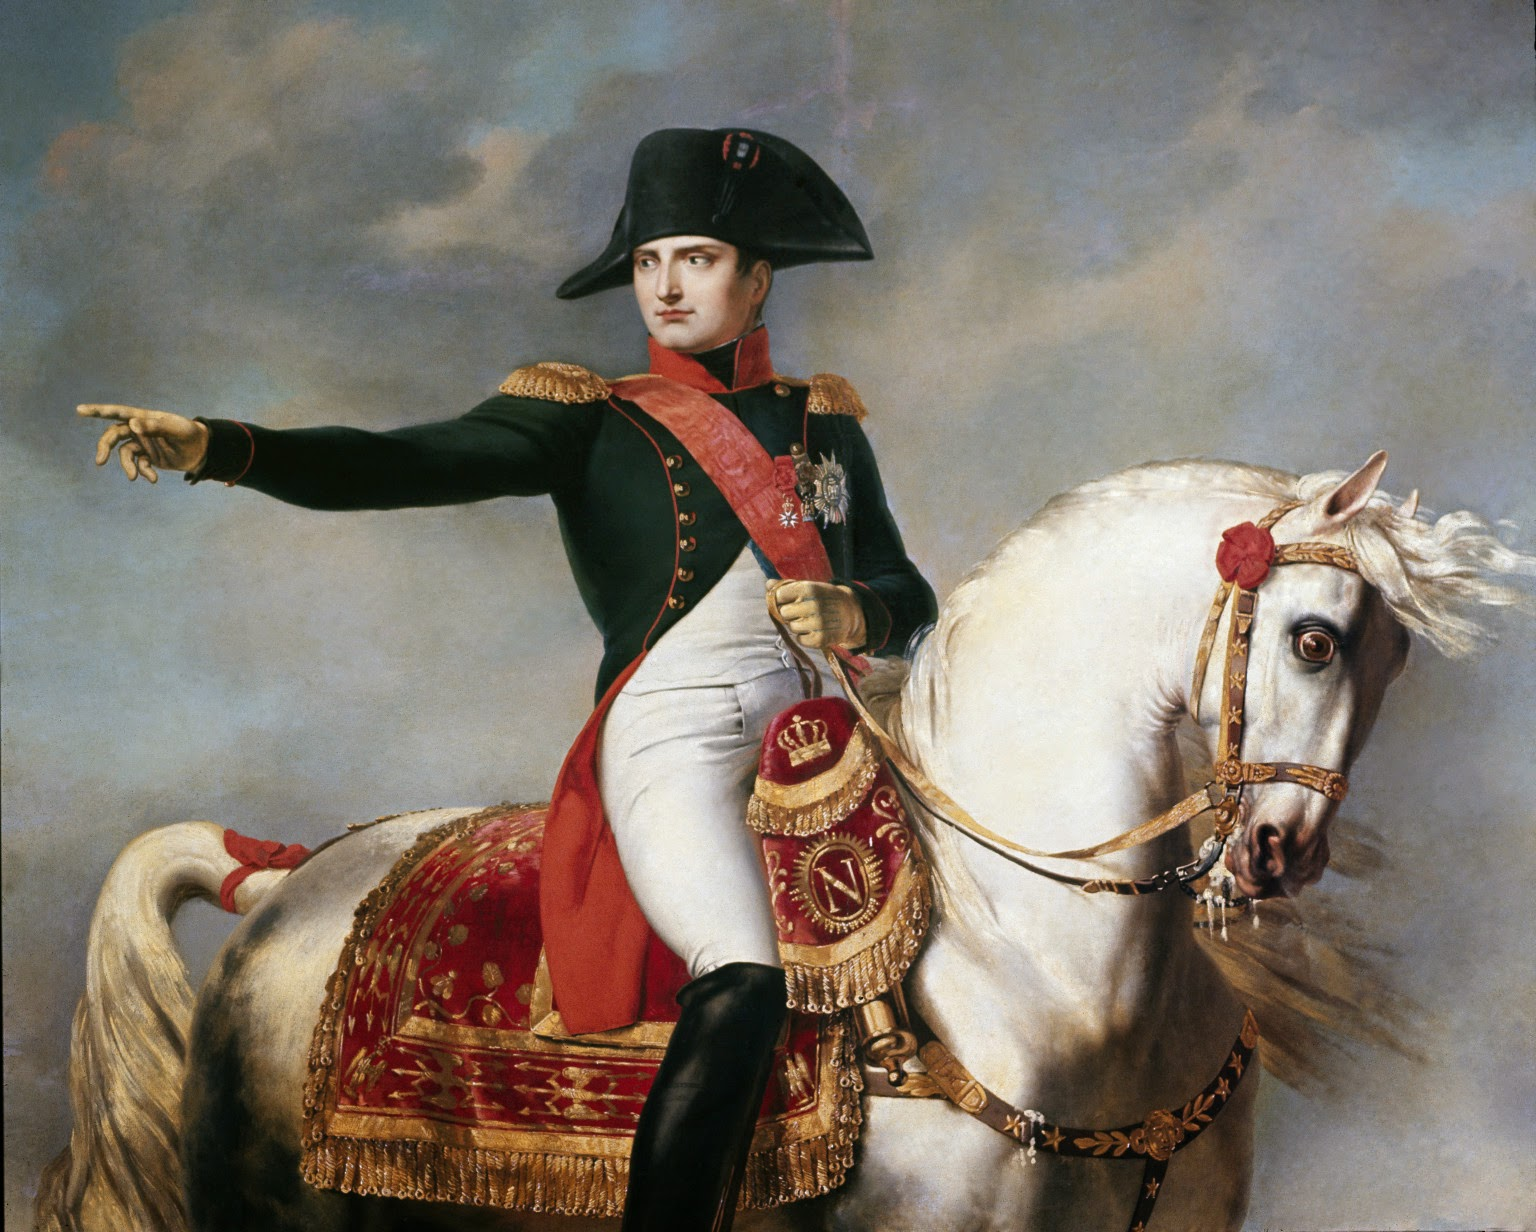 essay on napoleon bonaparte essay on napoleon bonaparte gxart tiny tidbits napoleon bonaparte an essay by abhay venkitaramannapoleon bonaparte an essay by abhay venkitaraman